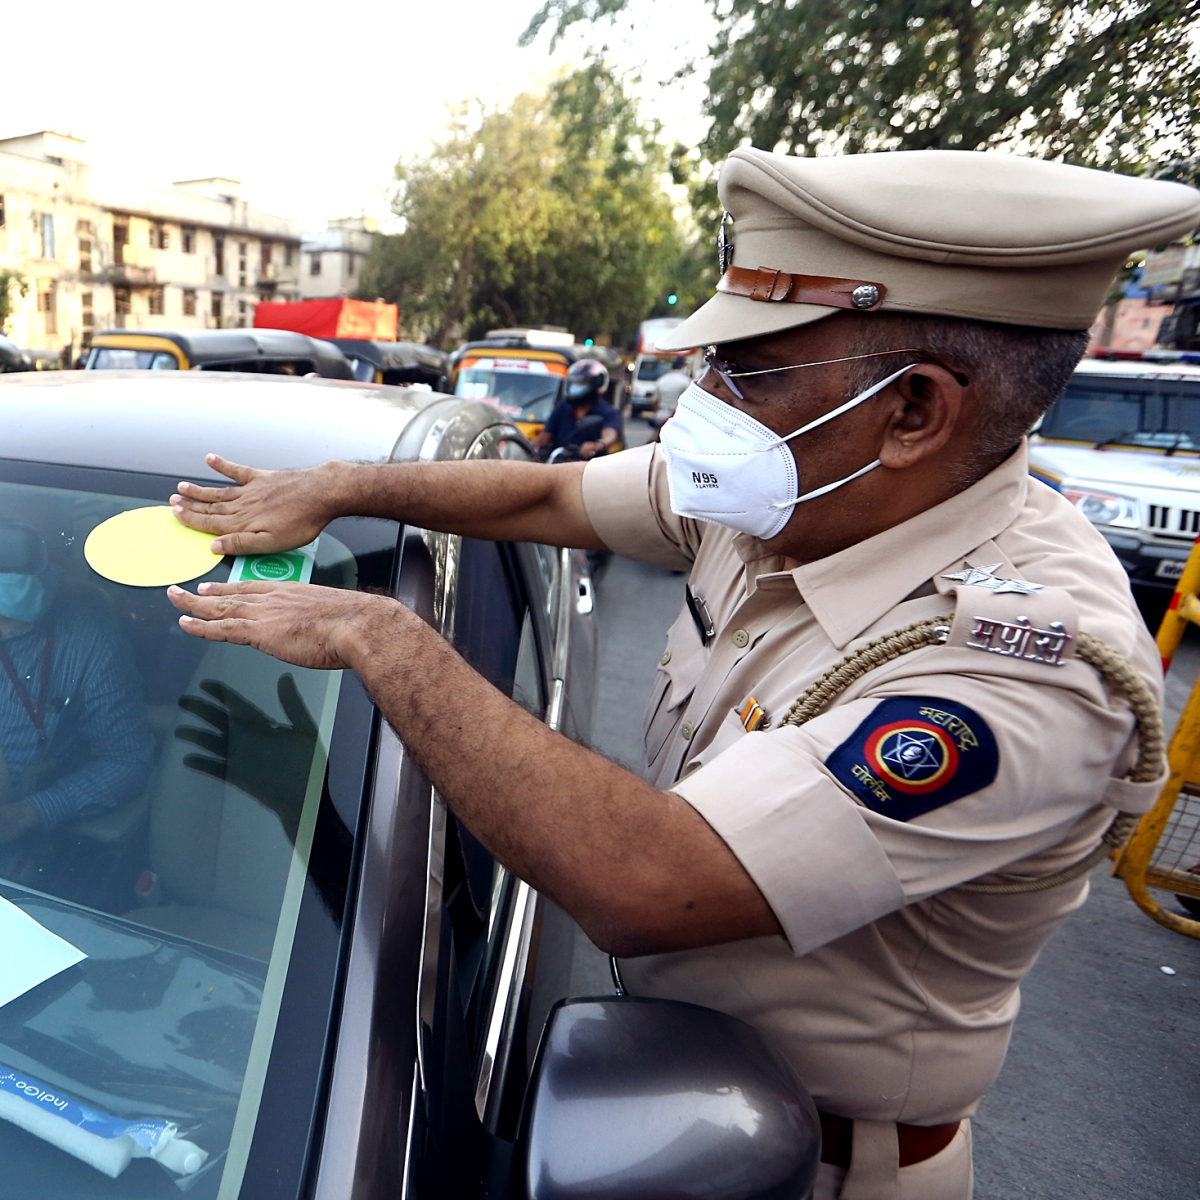 Mumbai Police discontinues colour-coded emergency travel sticker system; evokes mixed feelings on Twitter